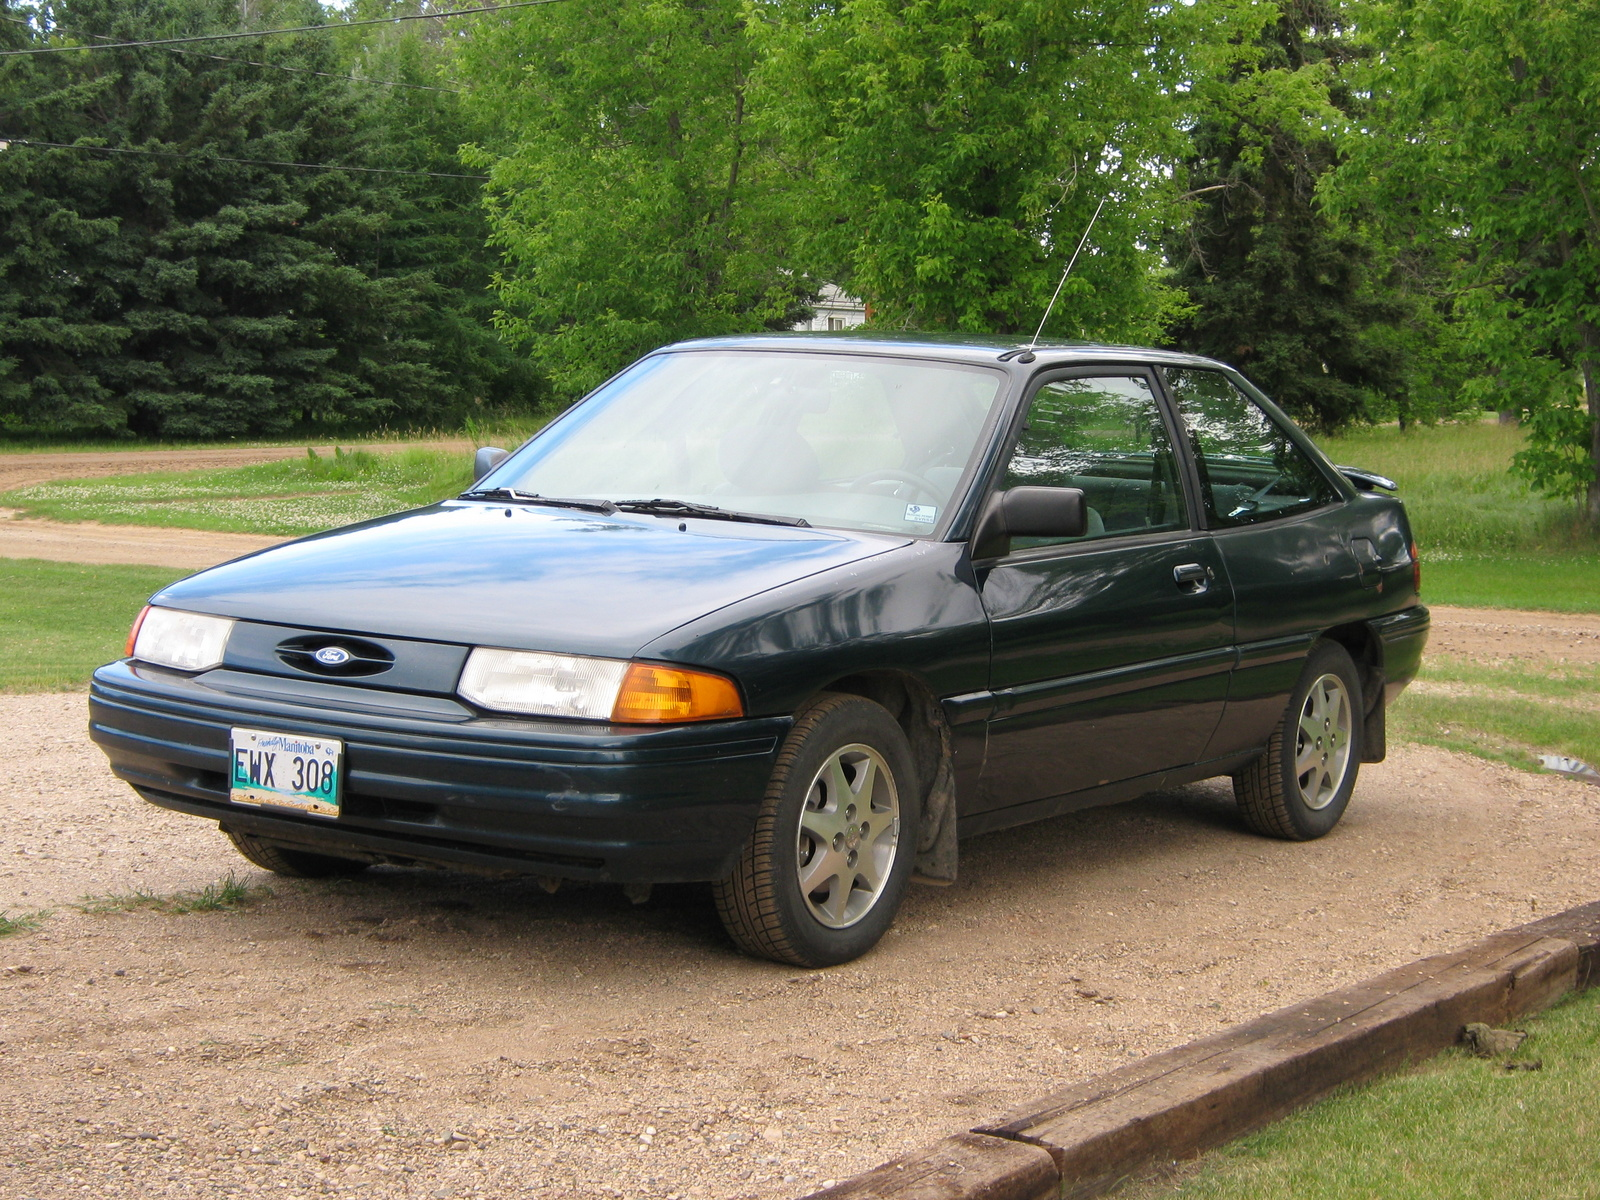 1995 escort ford transmission jpg 422x640